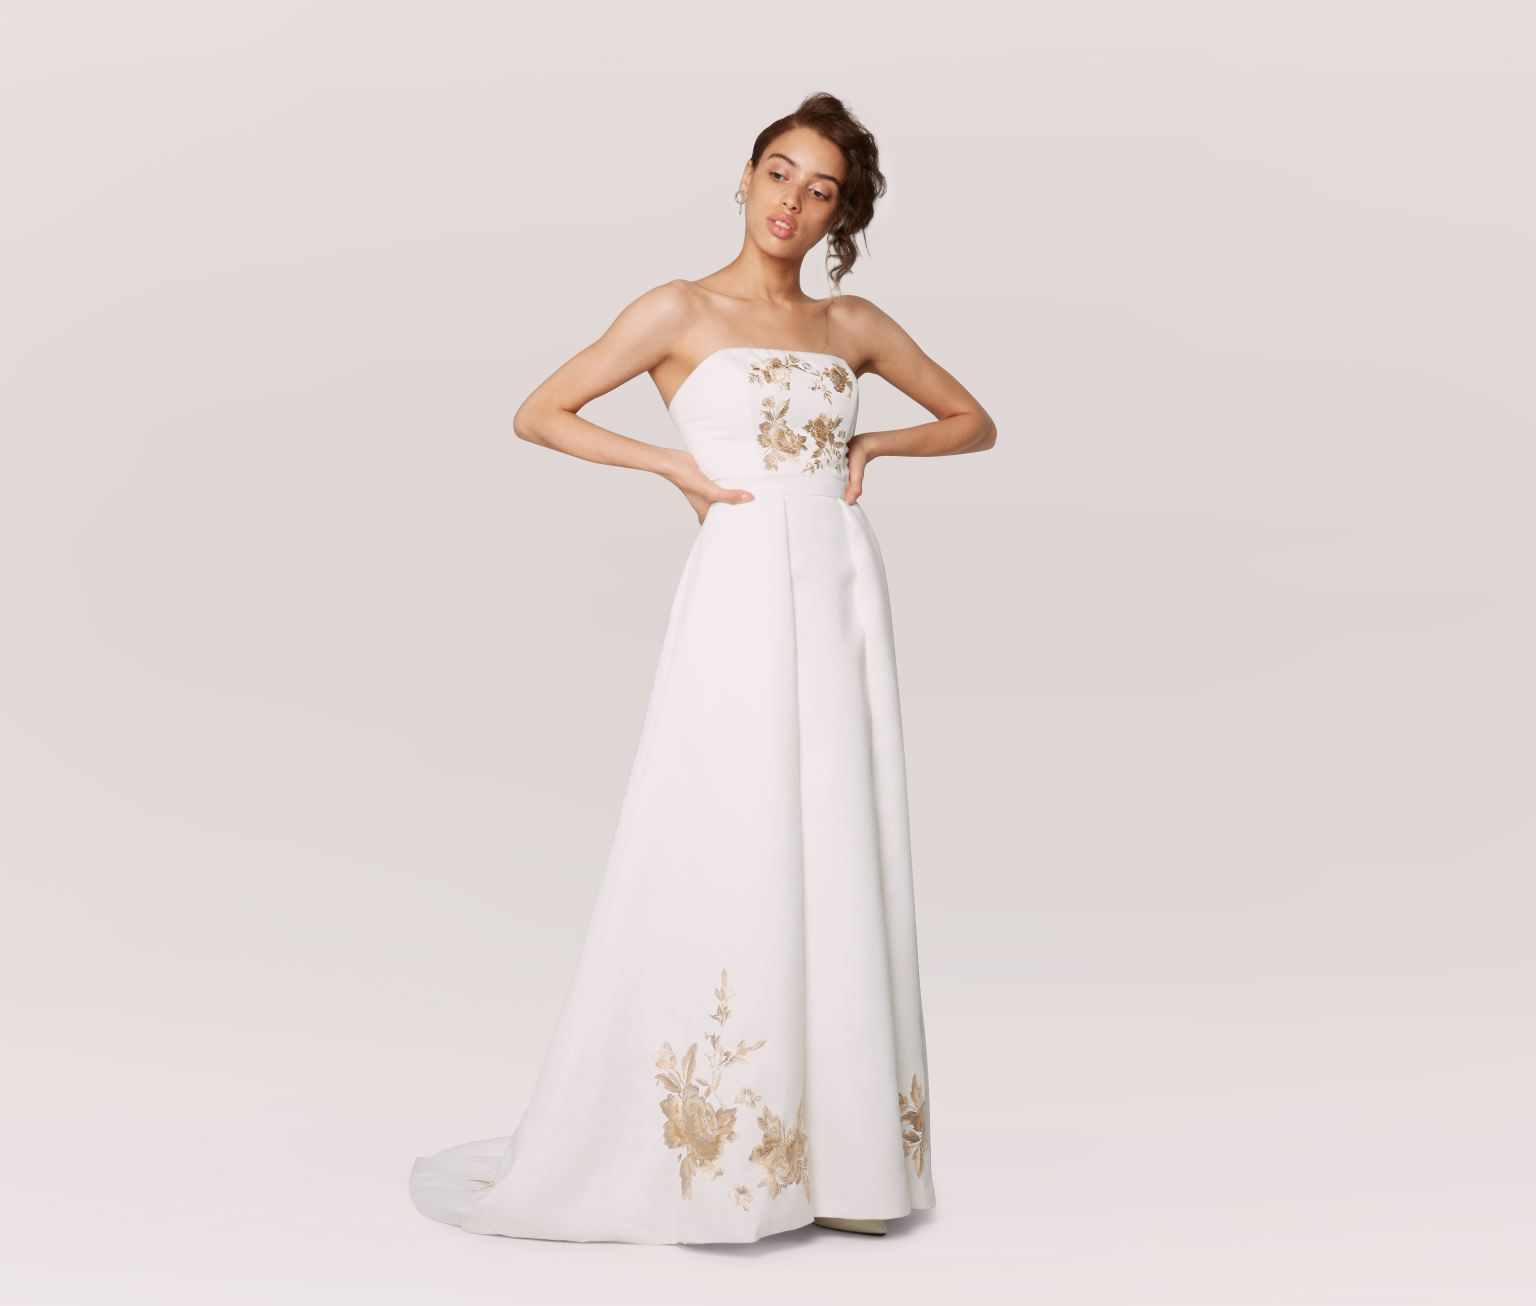 The Queen Of The Night Dress Formal Dresses Wedding Dress